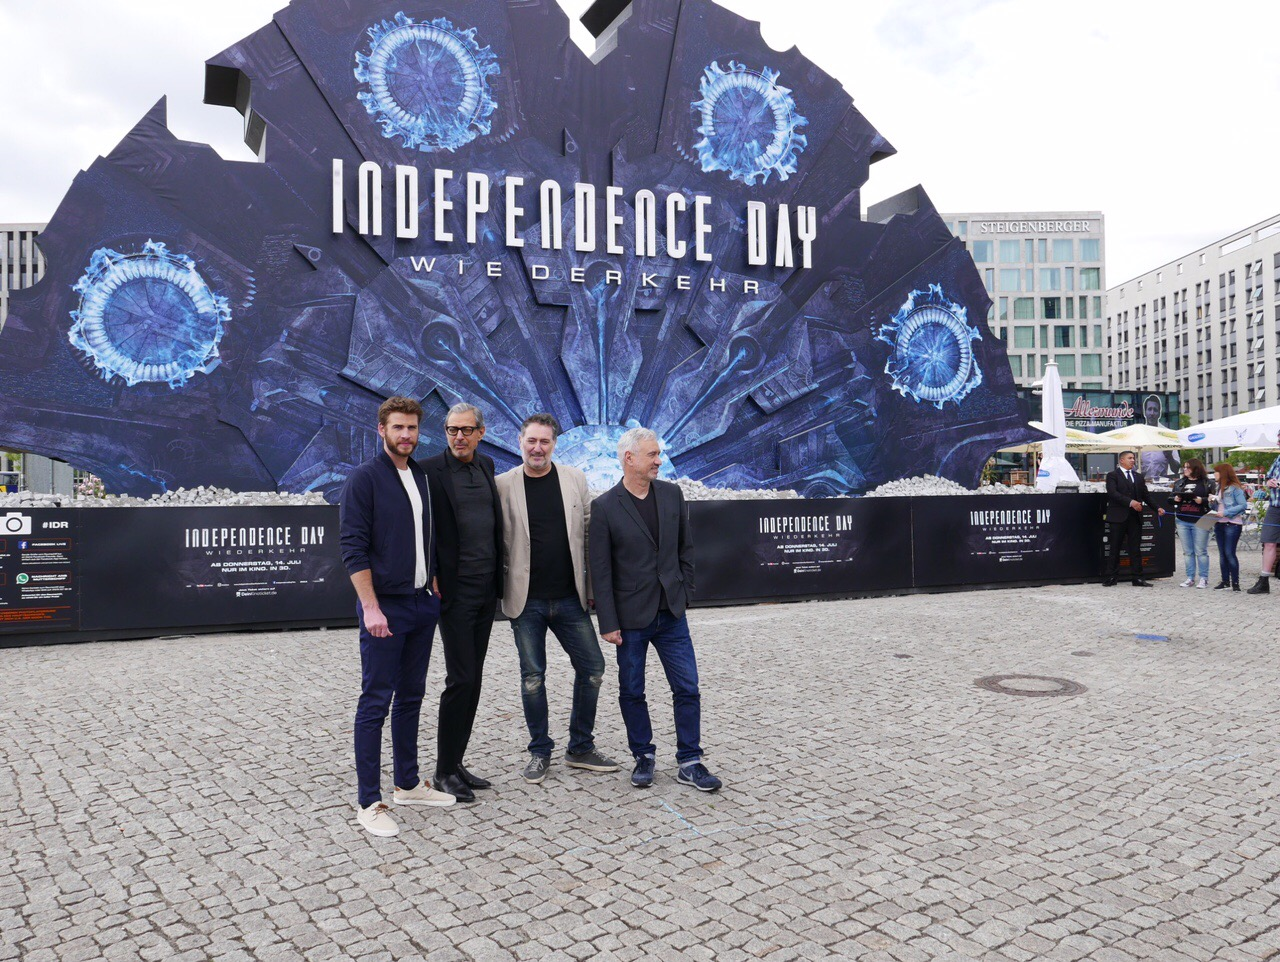 Roland, Liam, Jeff, and Harald pose in Berlin, Germany